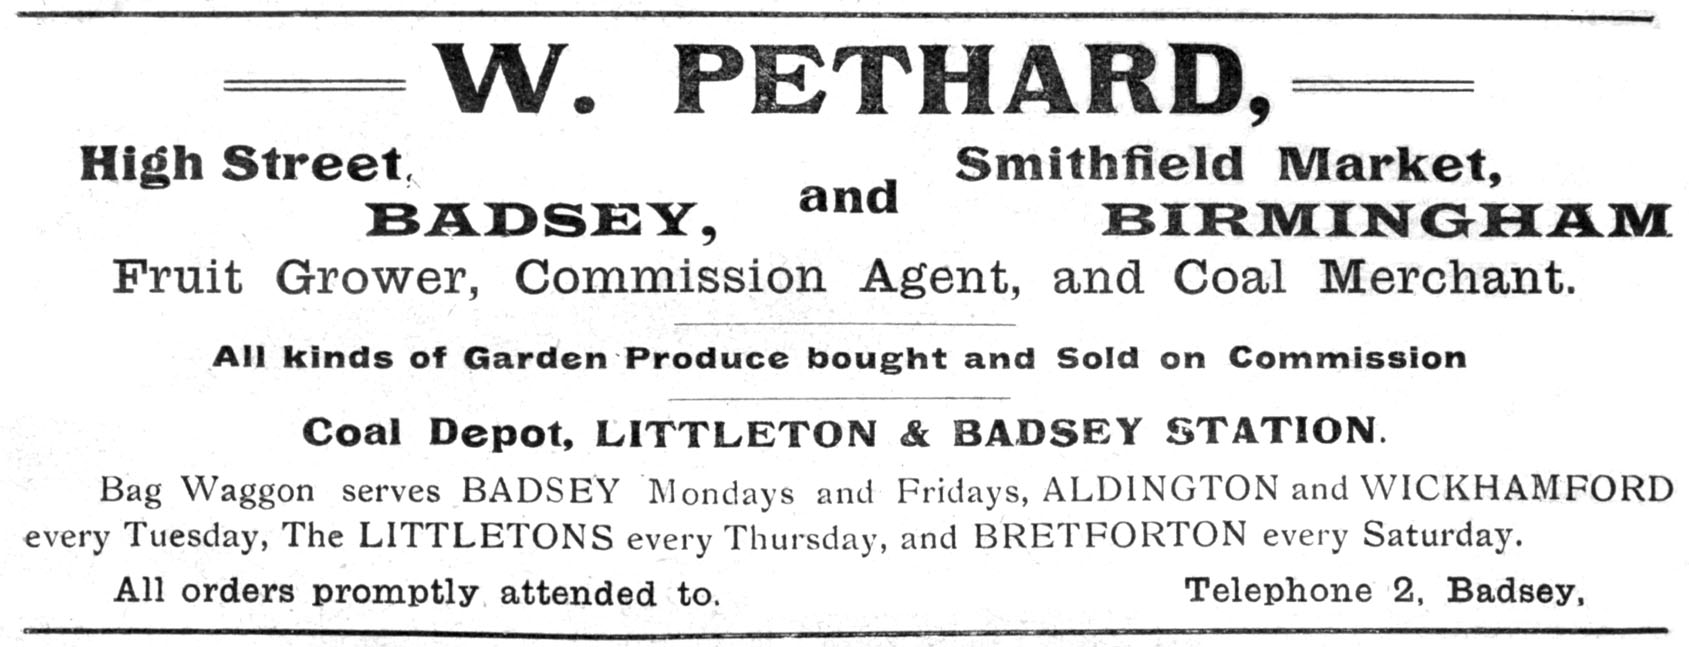 William Pethard's advert in the parish magazine